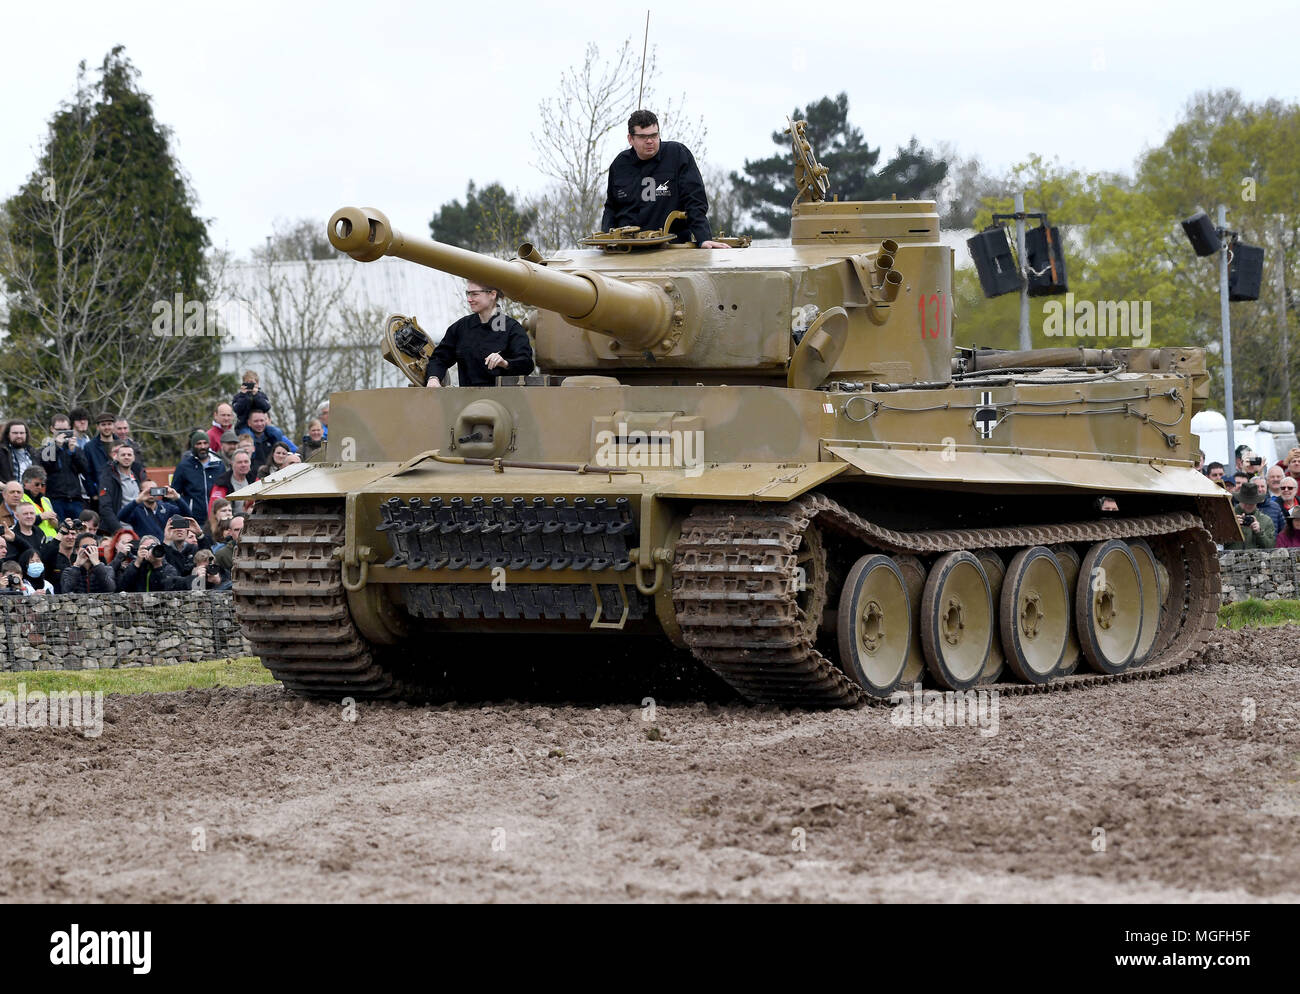 Tiger 131, world-famous Second World War tank, the only operating Tiger I in the world, takes to the parade ground at Bovington Tank Museum, Dorset. Credit: Finnbarr Webster/Alamy Live News - Stock Image